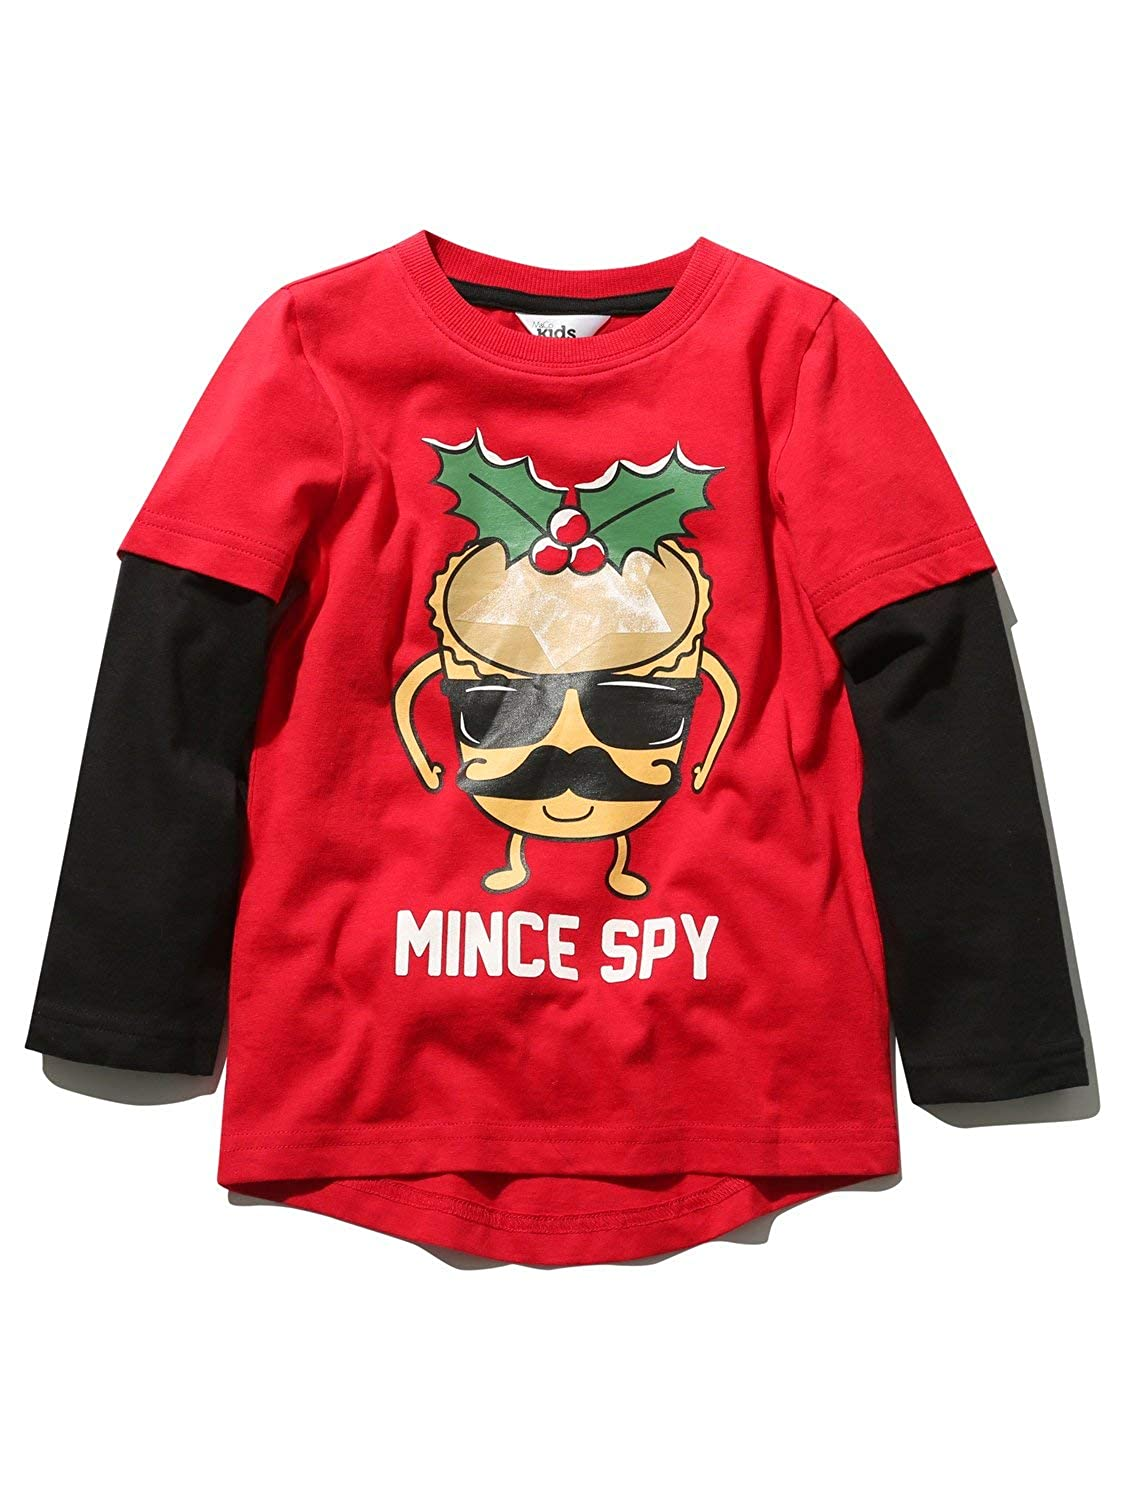 M& Co Boys Cotton Stretch Layered Long Sleeve Crew Neck Mince Spy Slogan Christmas T-Shirt